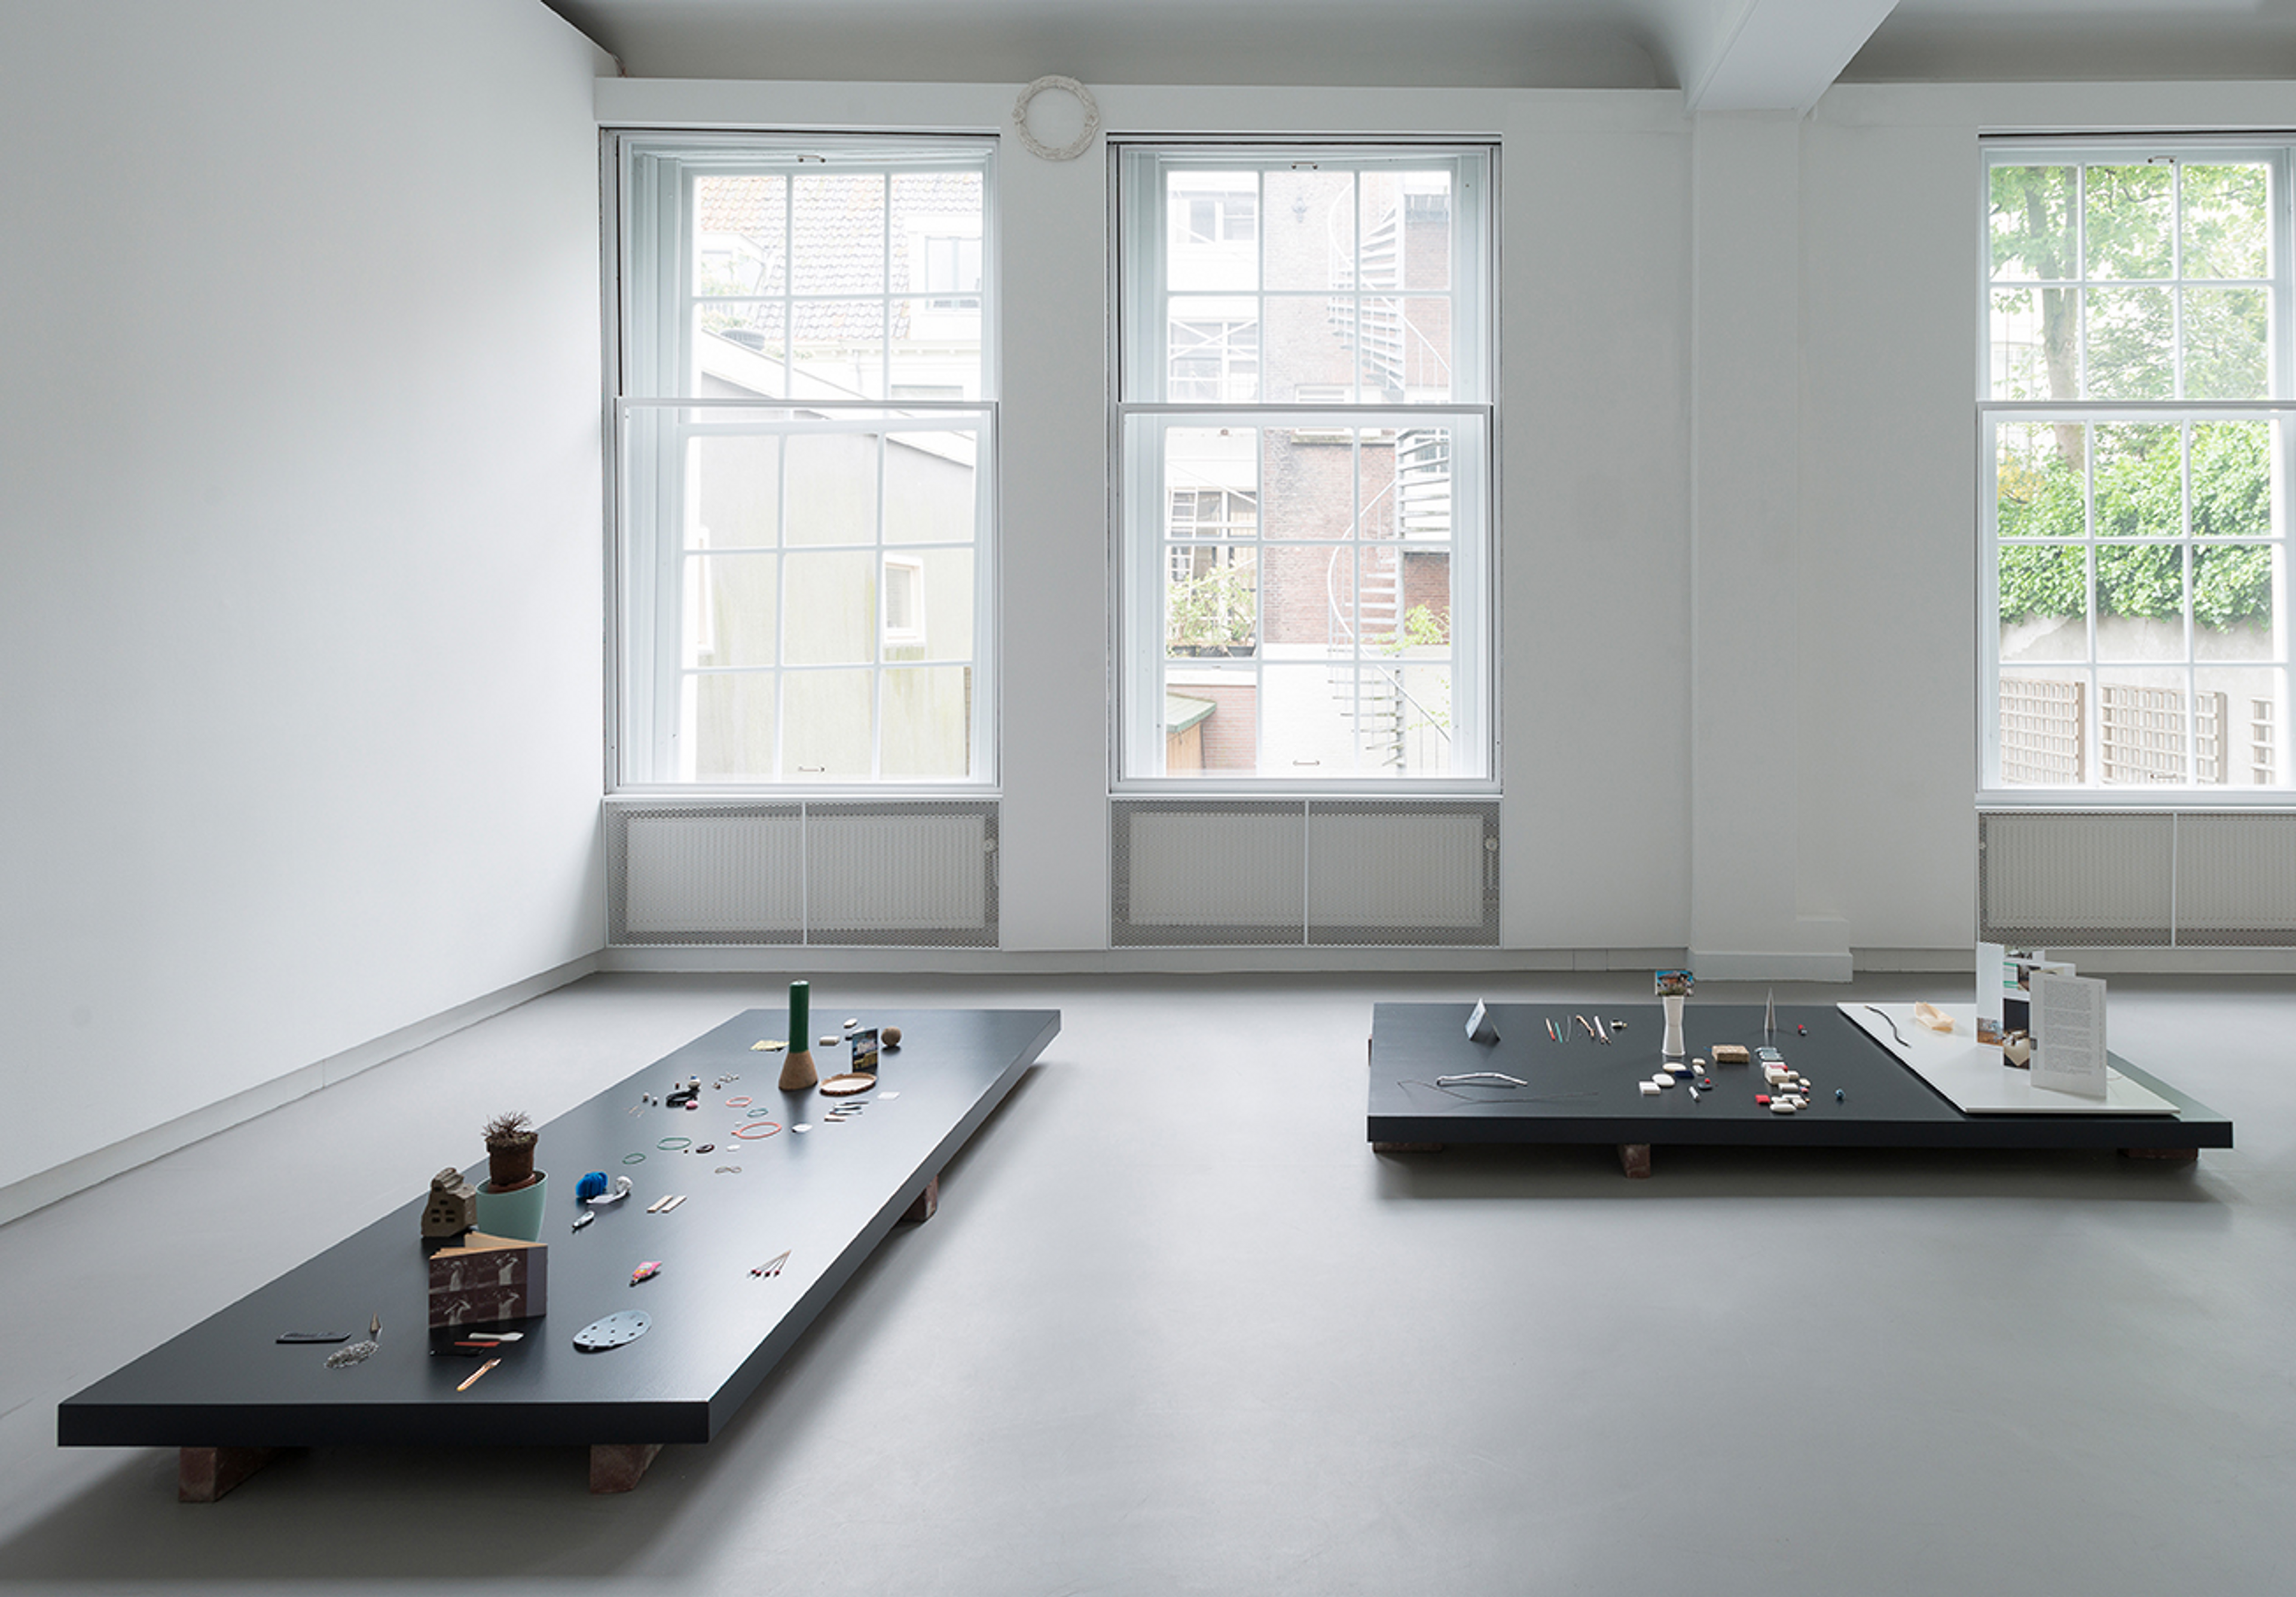 De Appel, Amsterdam, The Netherlands.  Installation view. Conversation about the show by Lian Ladia and Inga Lāce here*